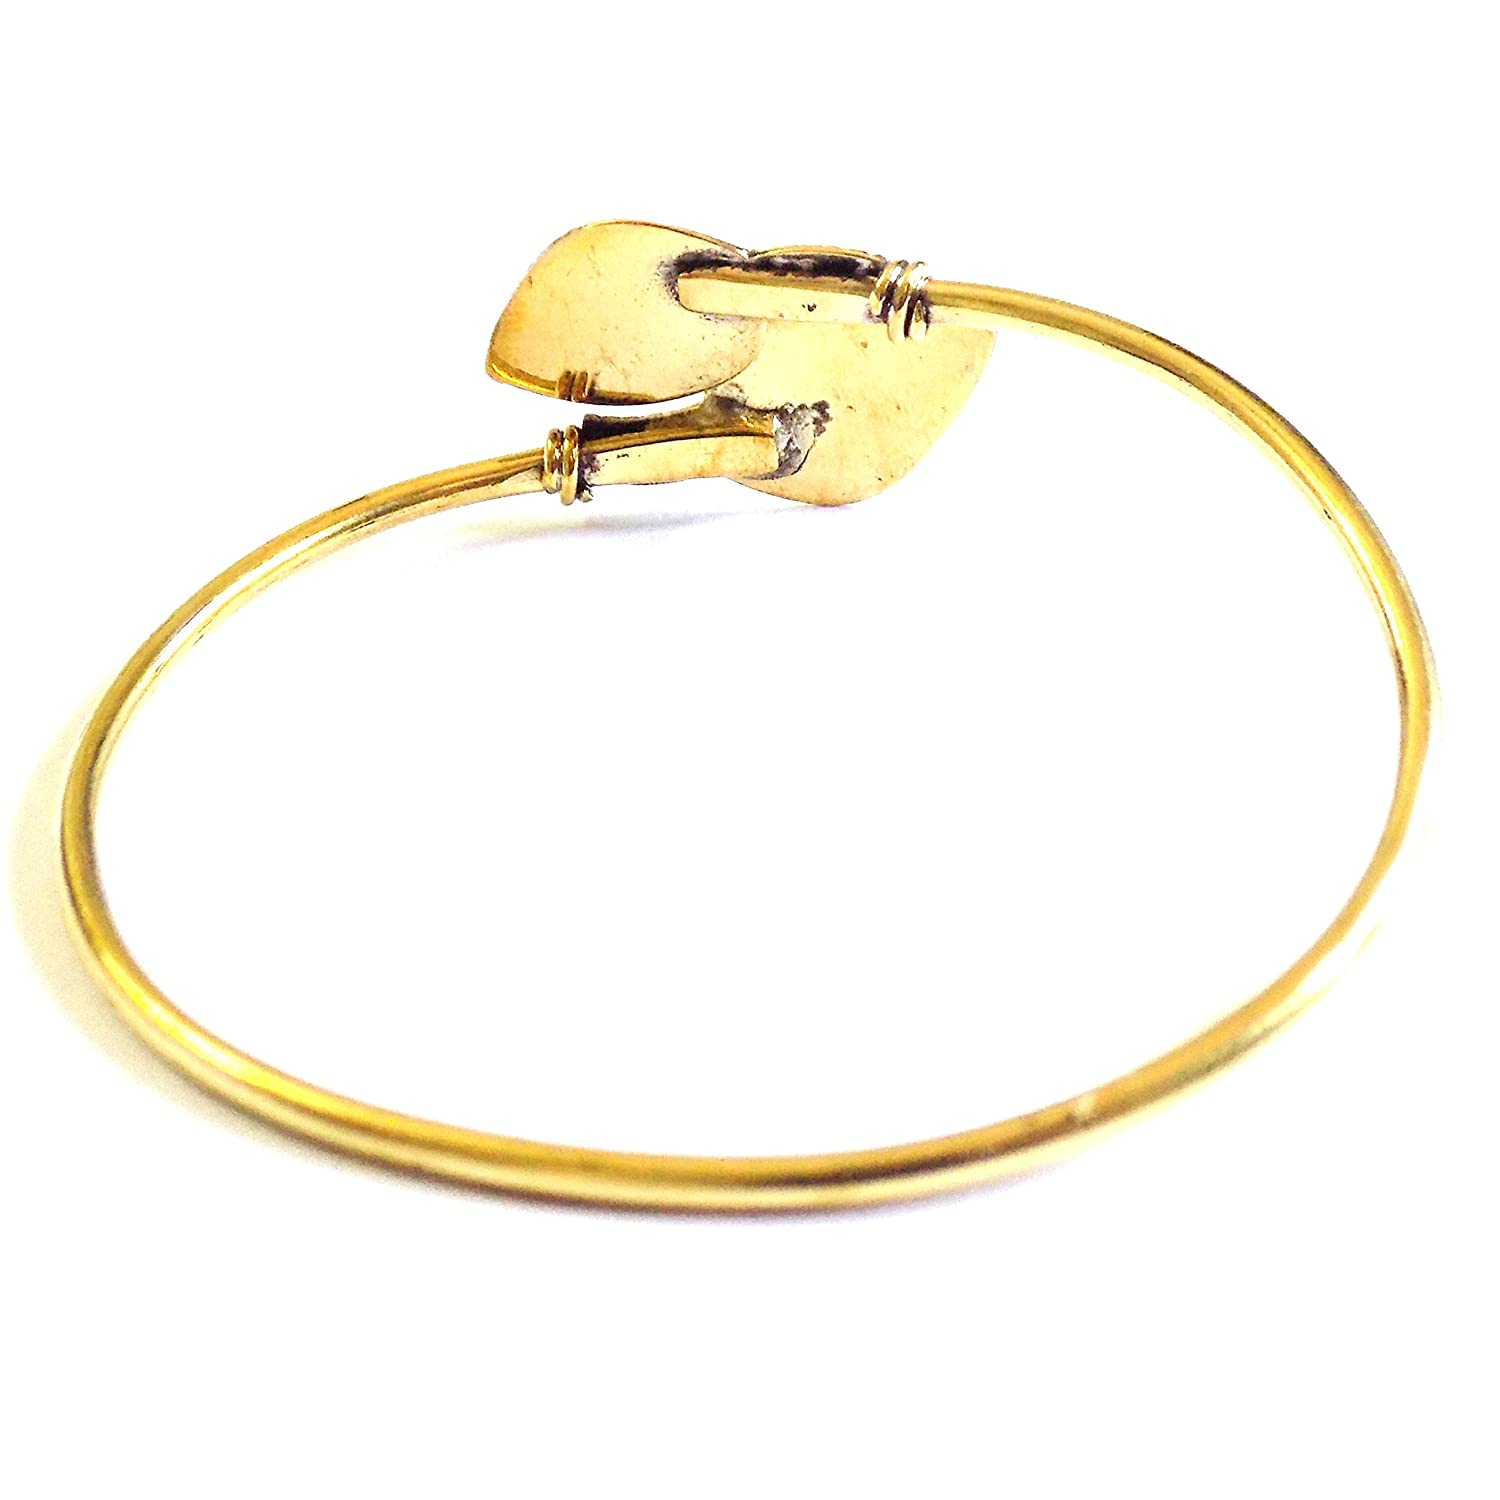 LEAF SHAPE Brass Handmade Bangle Gold Polished Free Size For Women//Girls